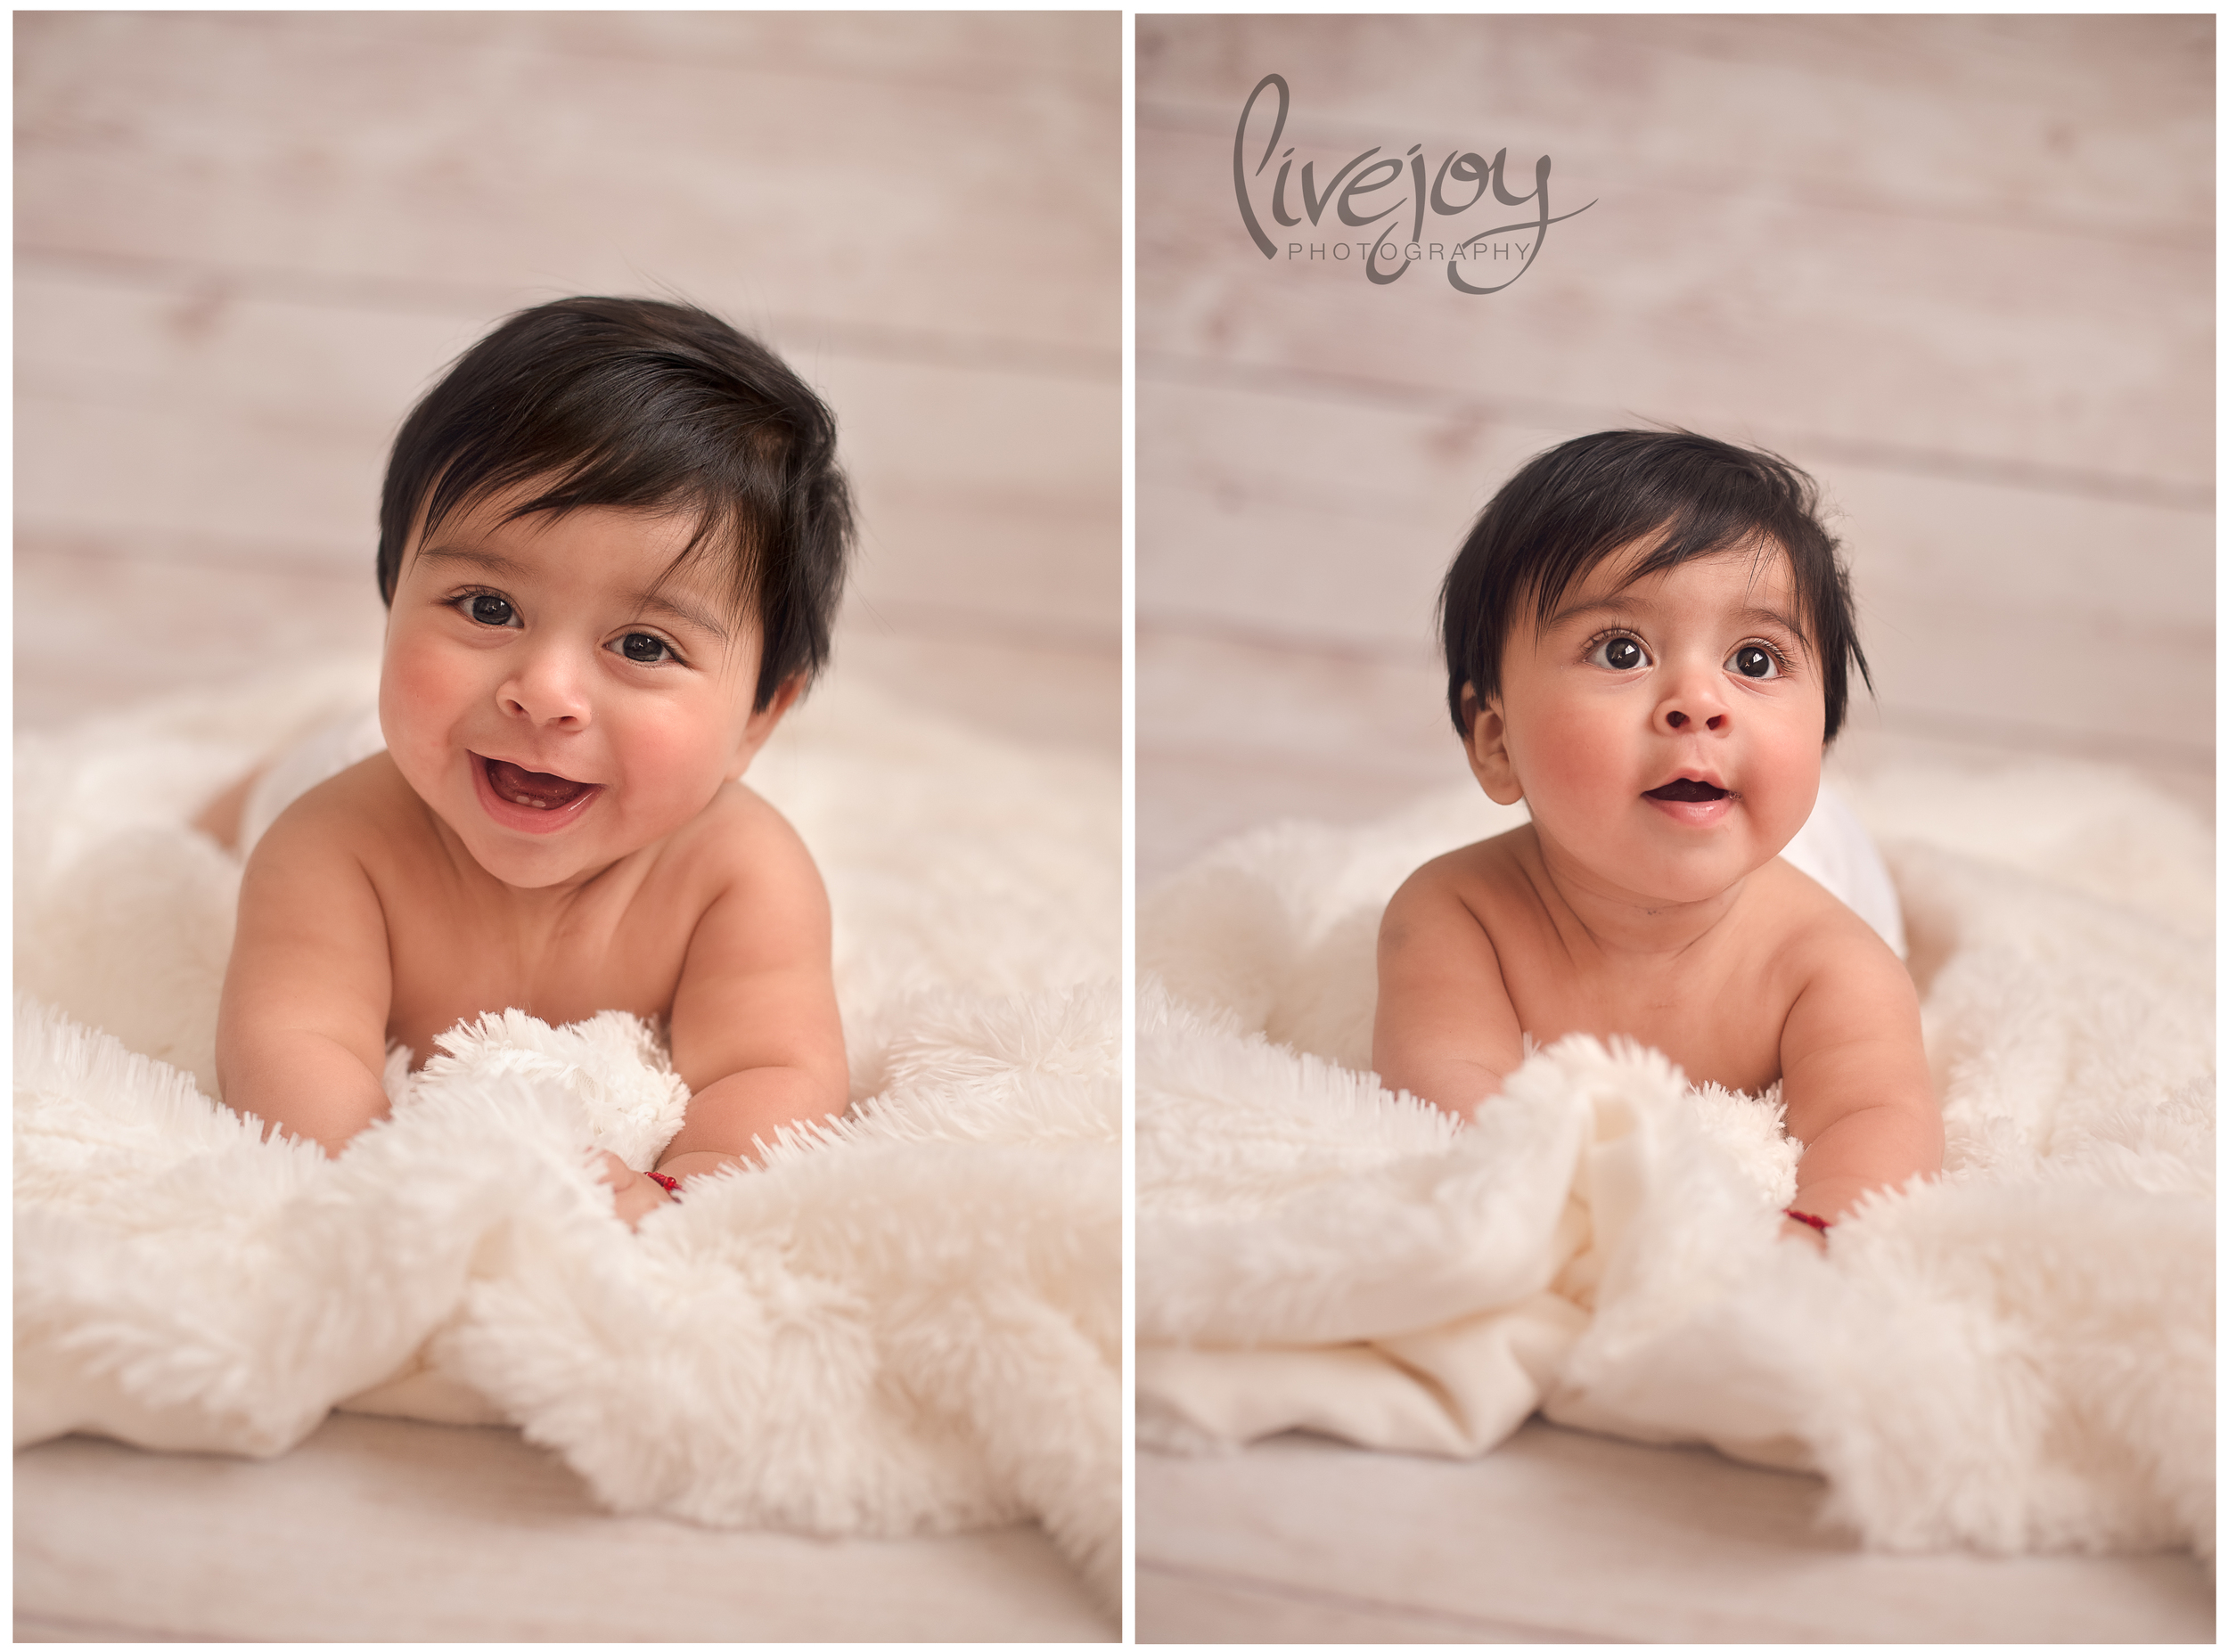 6 Months Studio Photography | LiveJoy Photography | Oregon